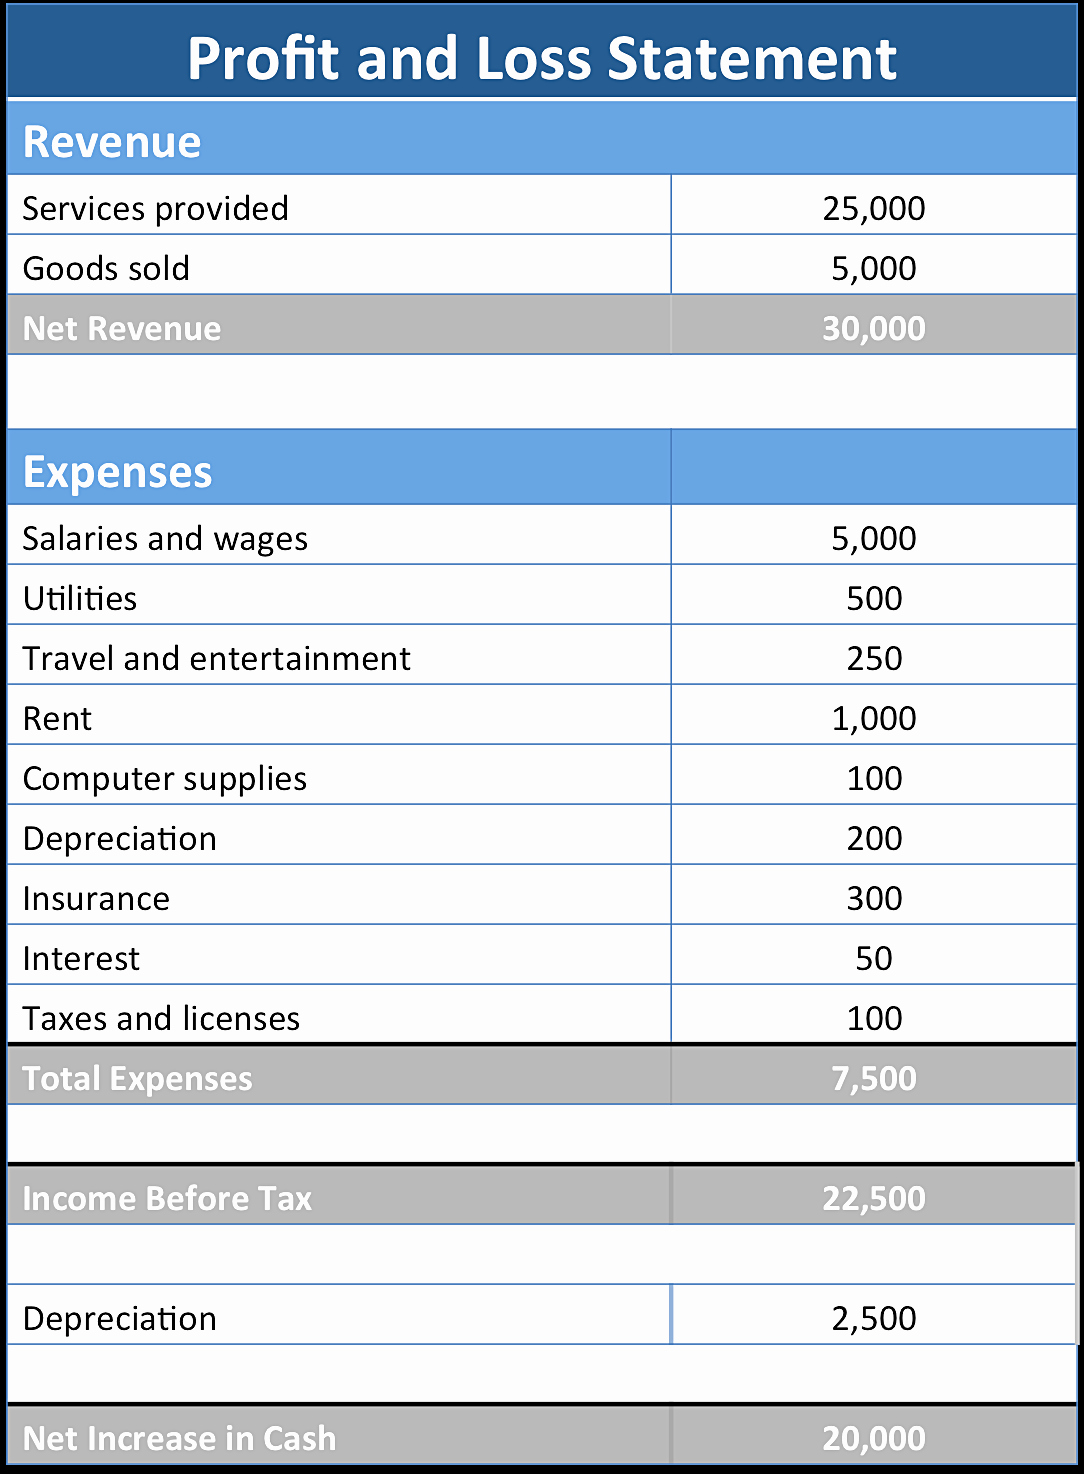 Income and Expense Statement Template Fresh Basic Profit and Loss Statement Template Mughals